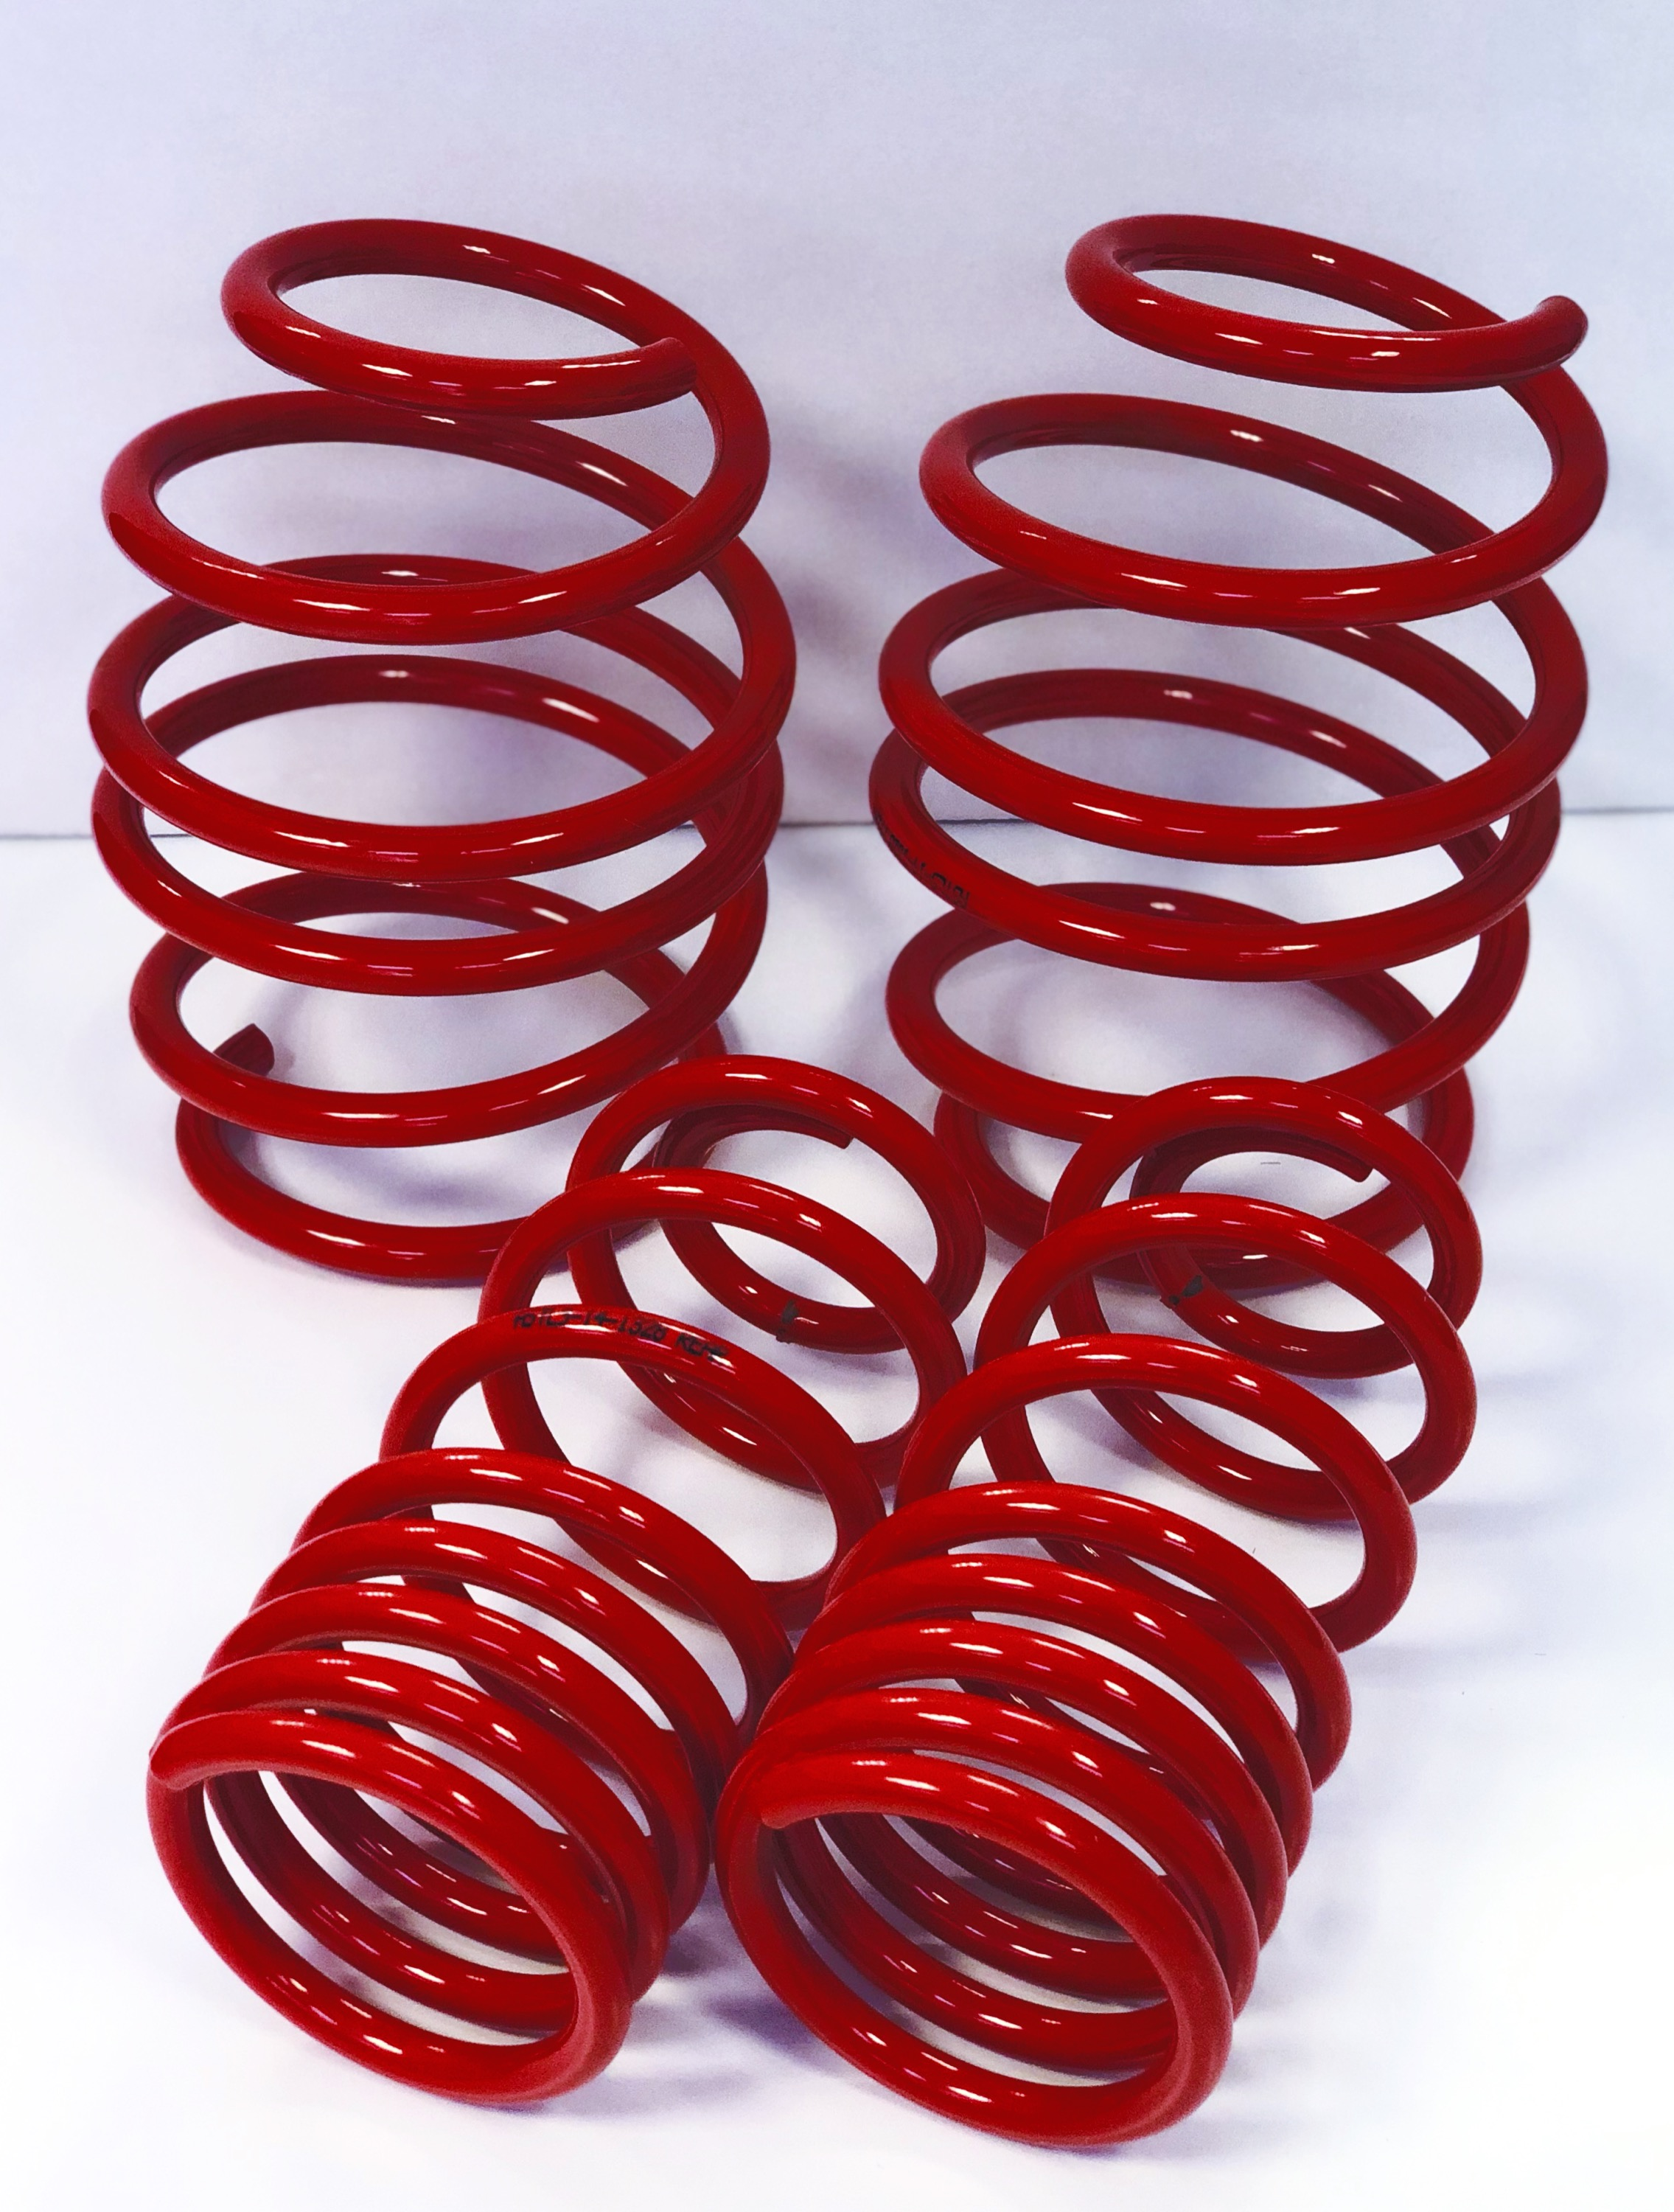 Vauxhall KADETT AST Suspension Lowering Springs 60MM